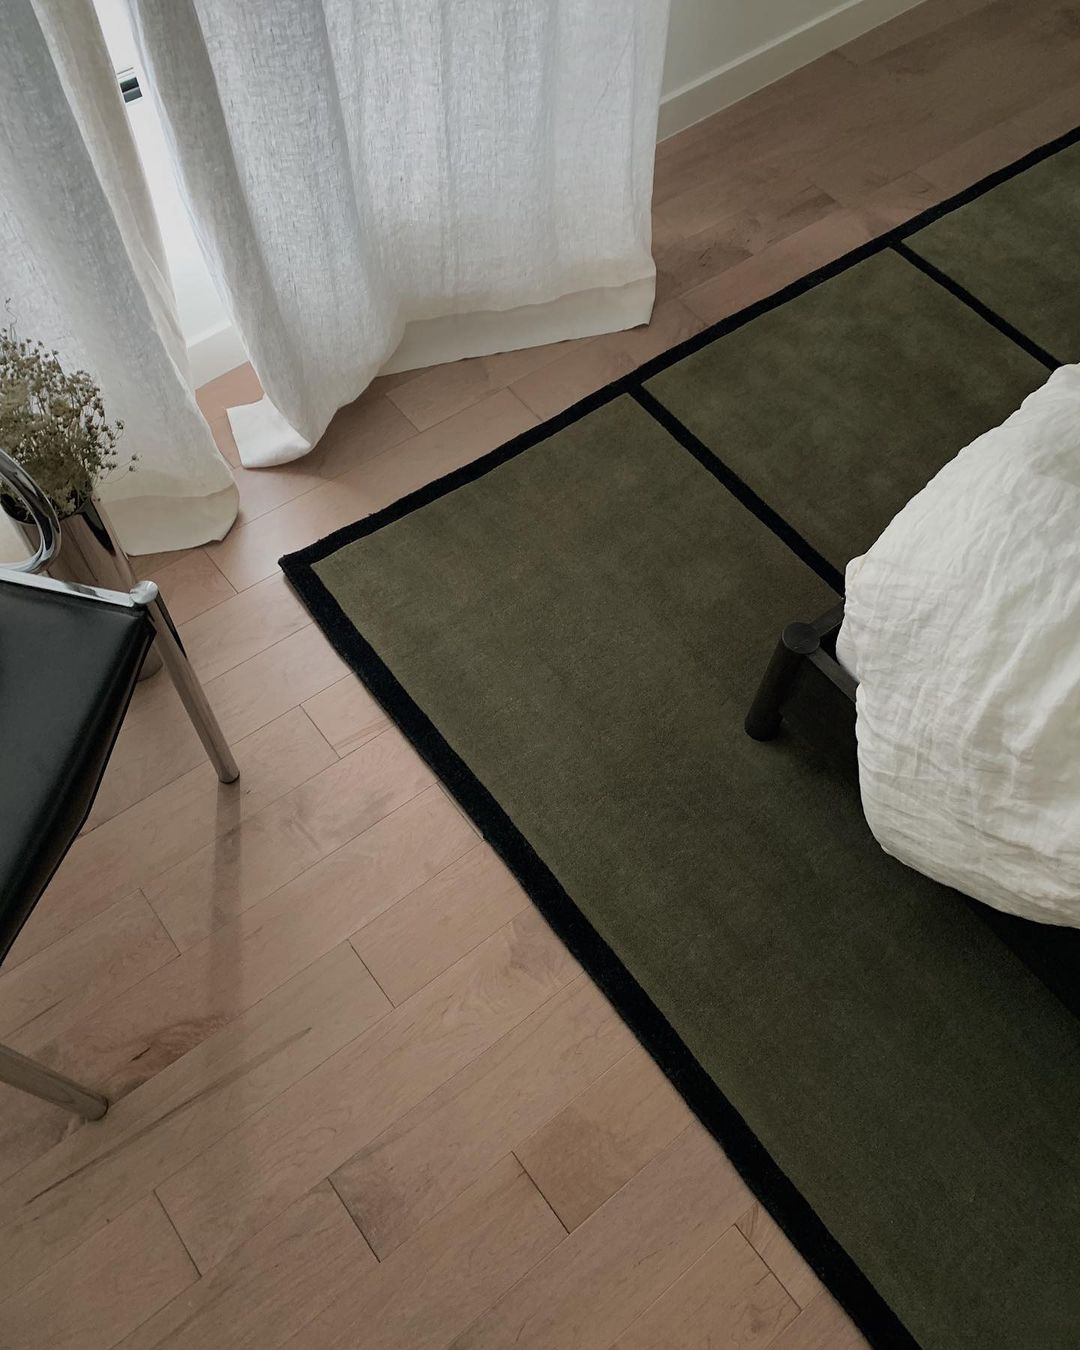 The corner of a AML 01 rug in Green and Black in a nice, modern bedroom.